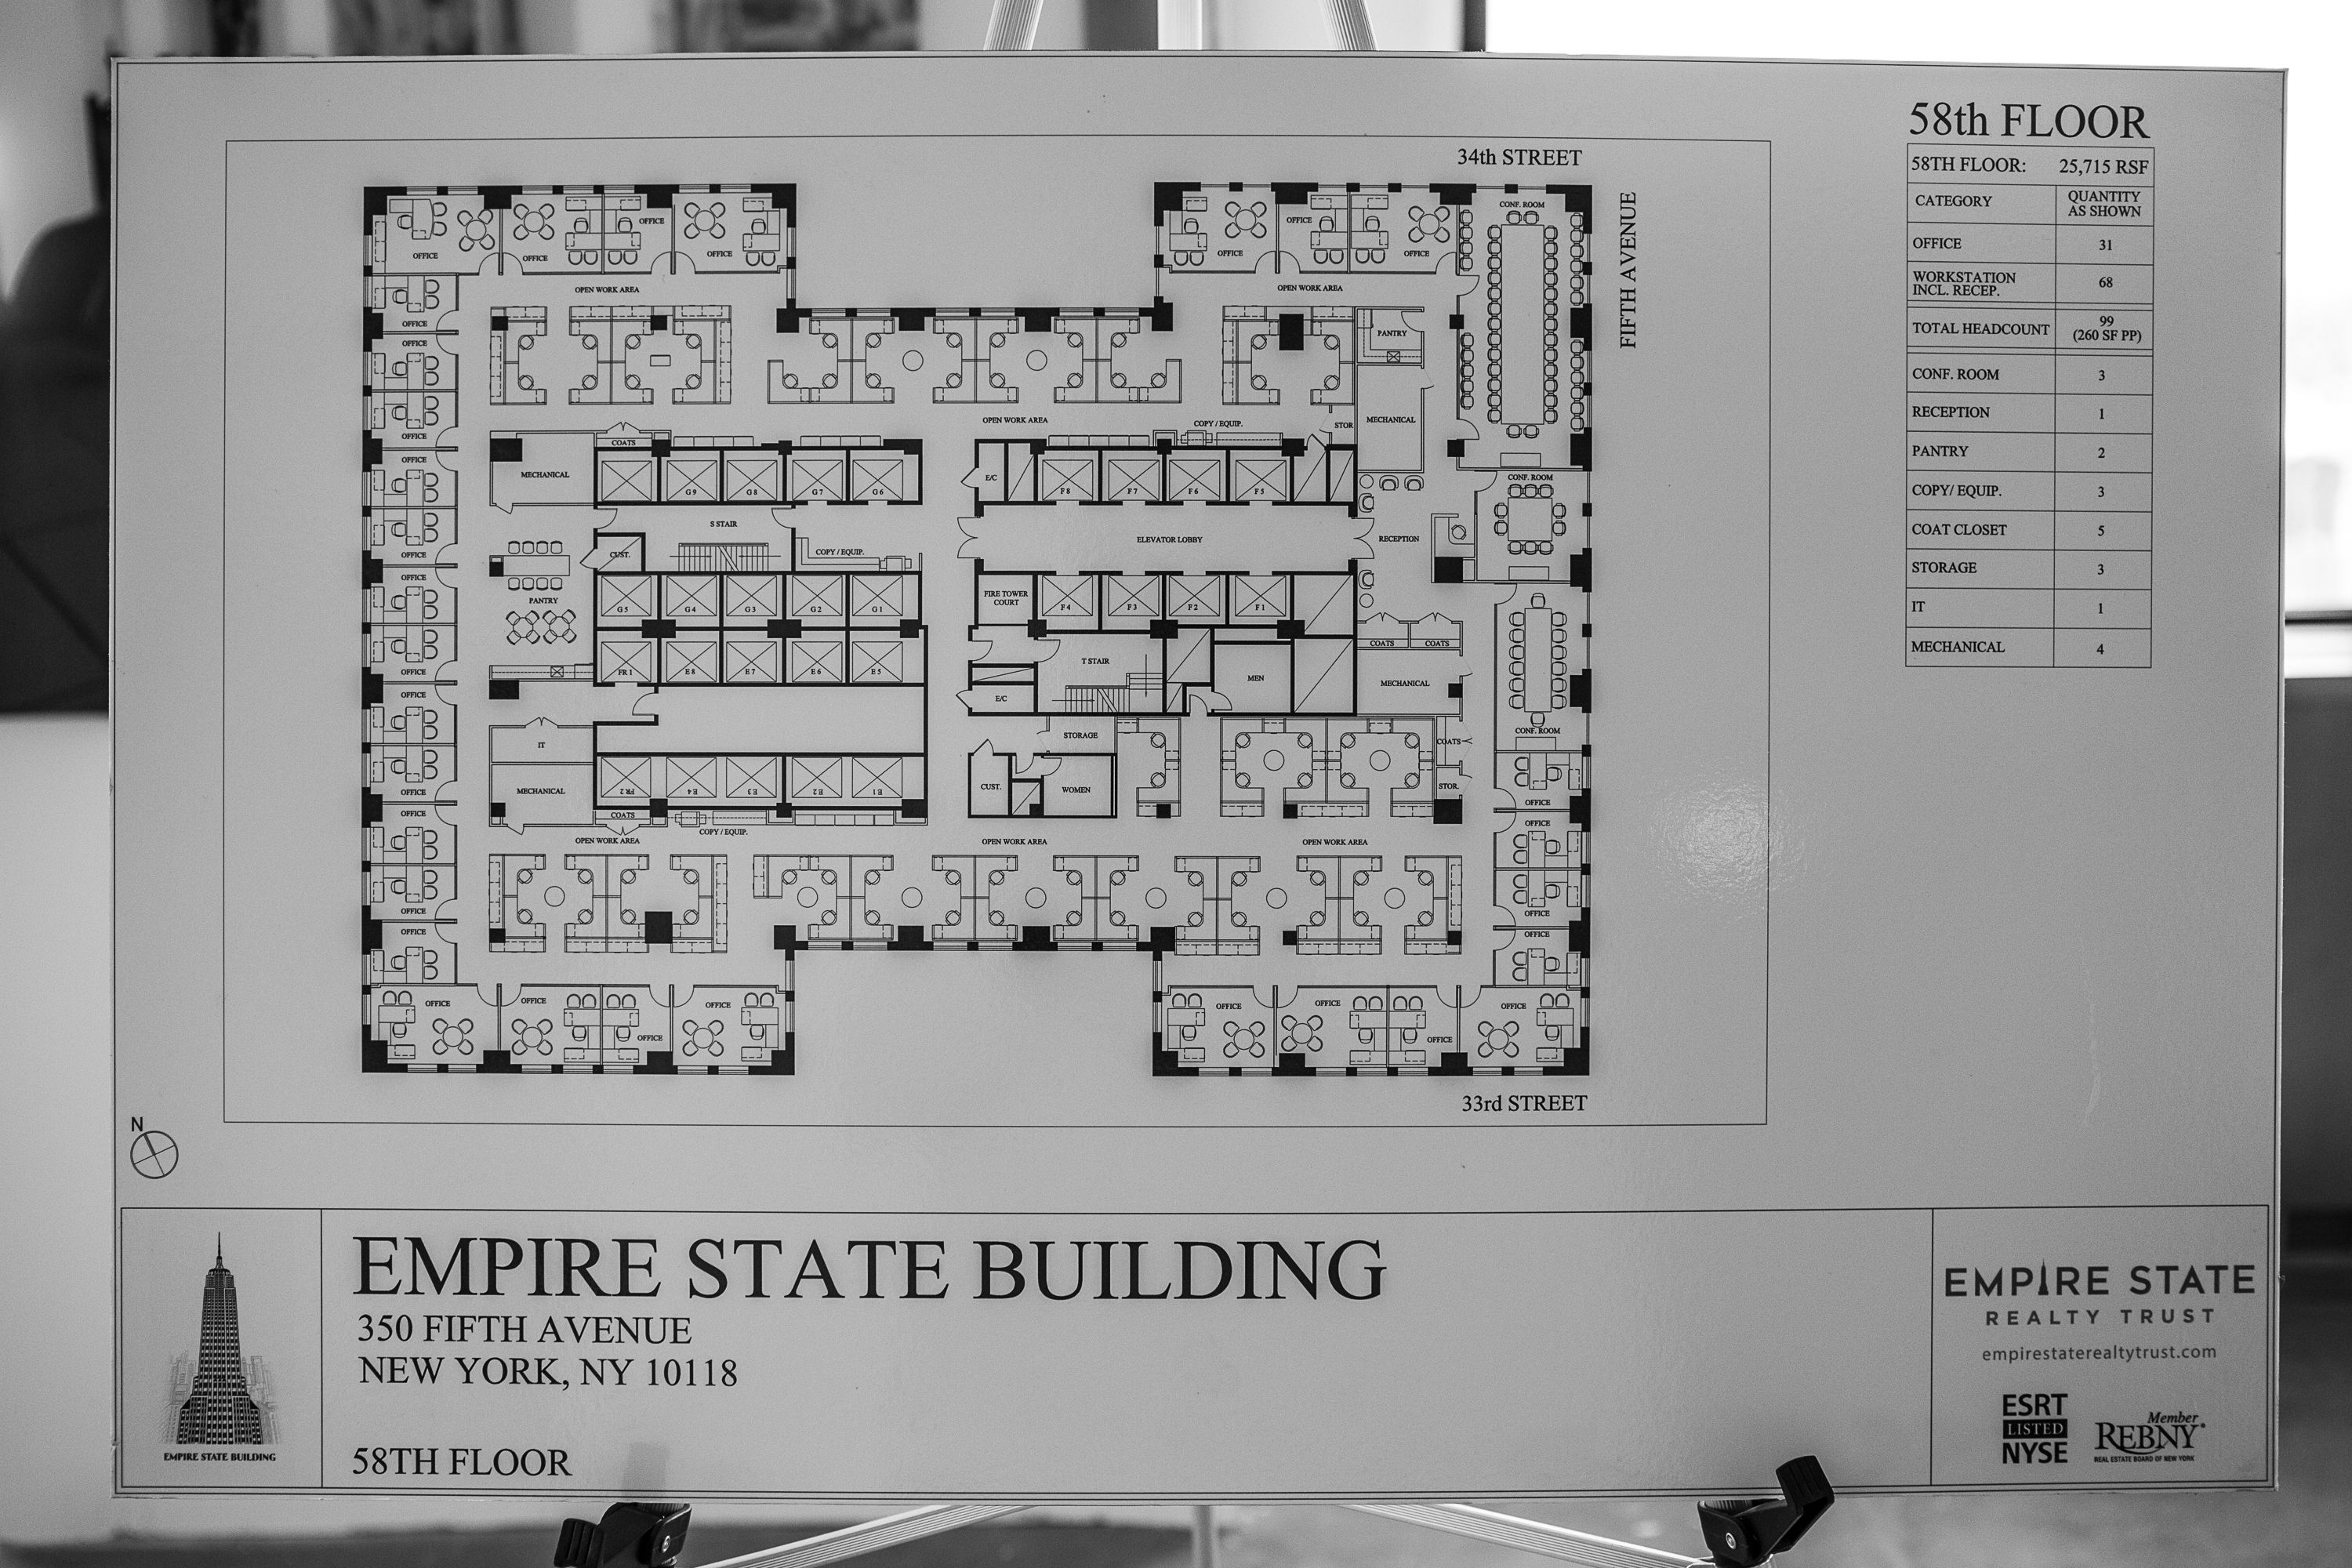 The Best Empire State Building Floor Plans And View In 2020 Empire State Building Empire State Architecture Drawing Plan